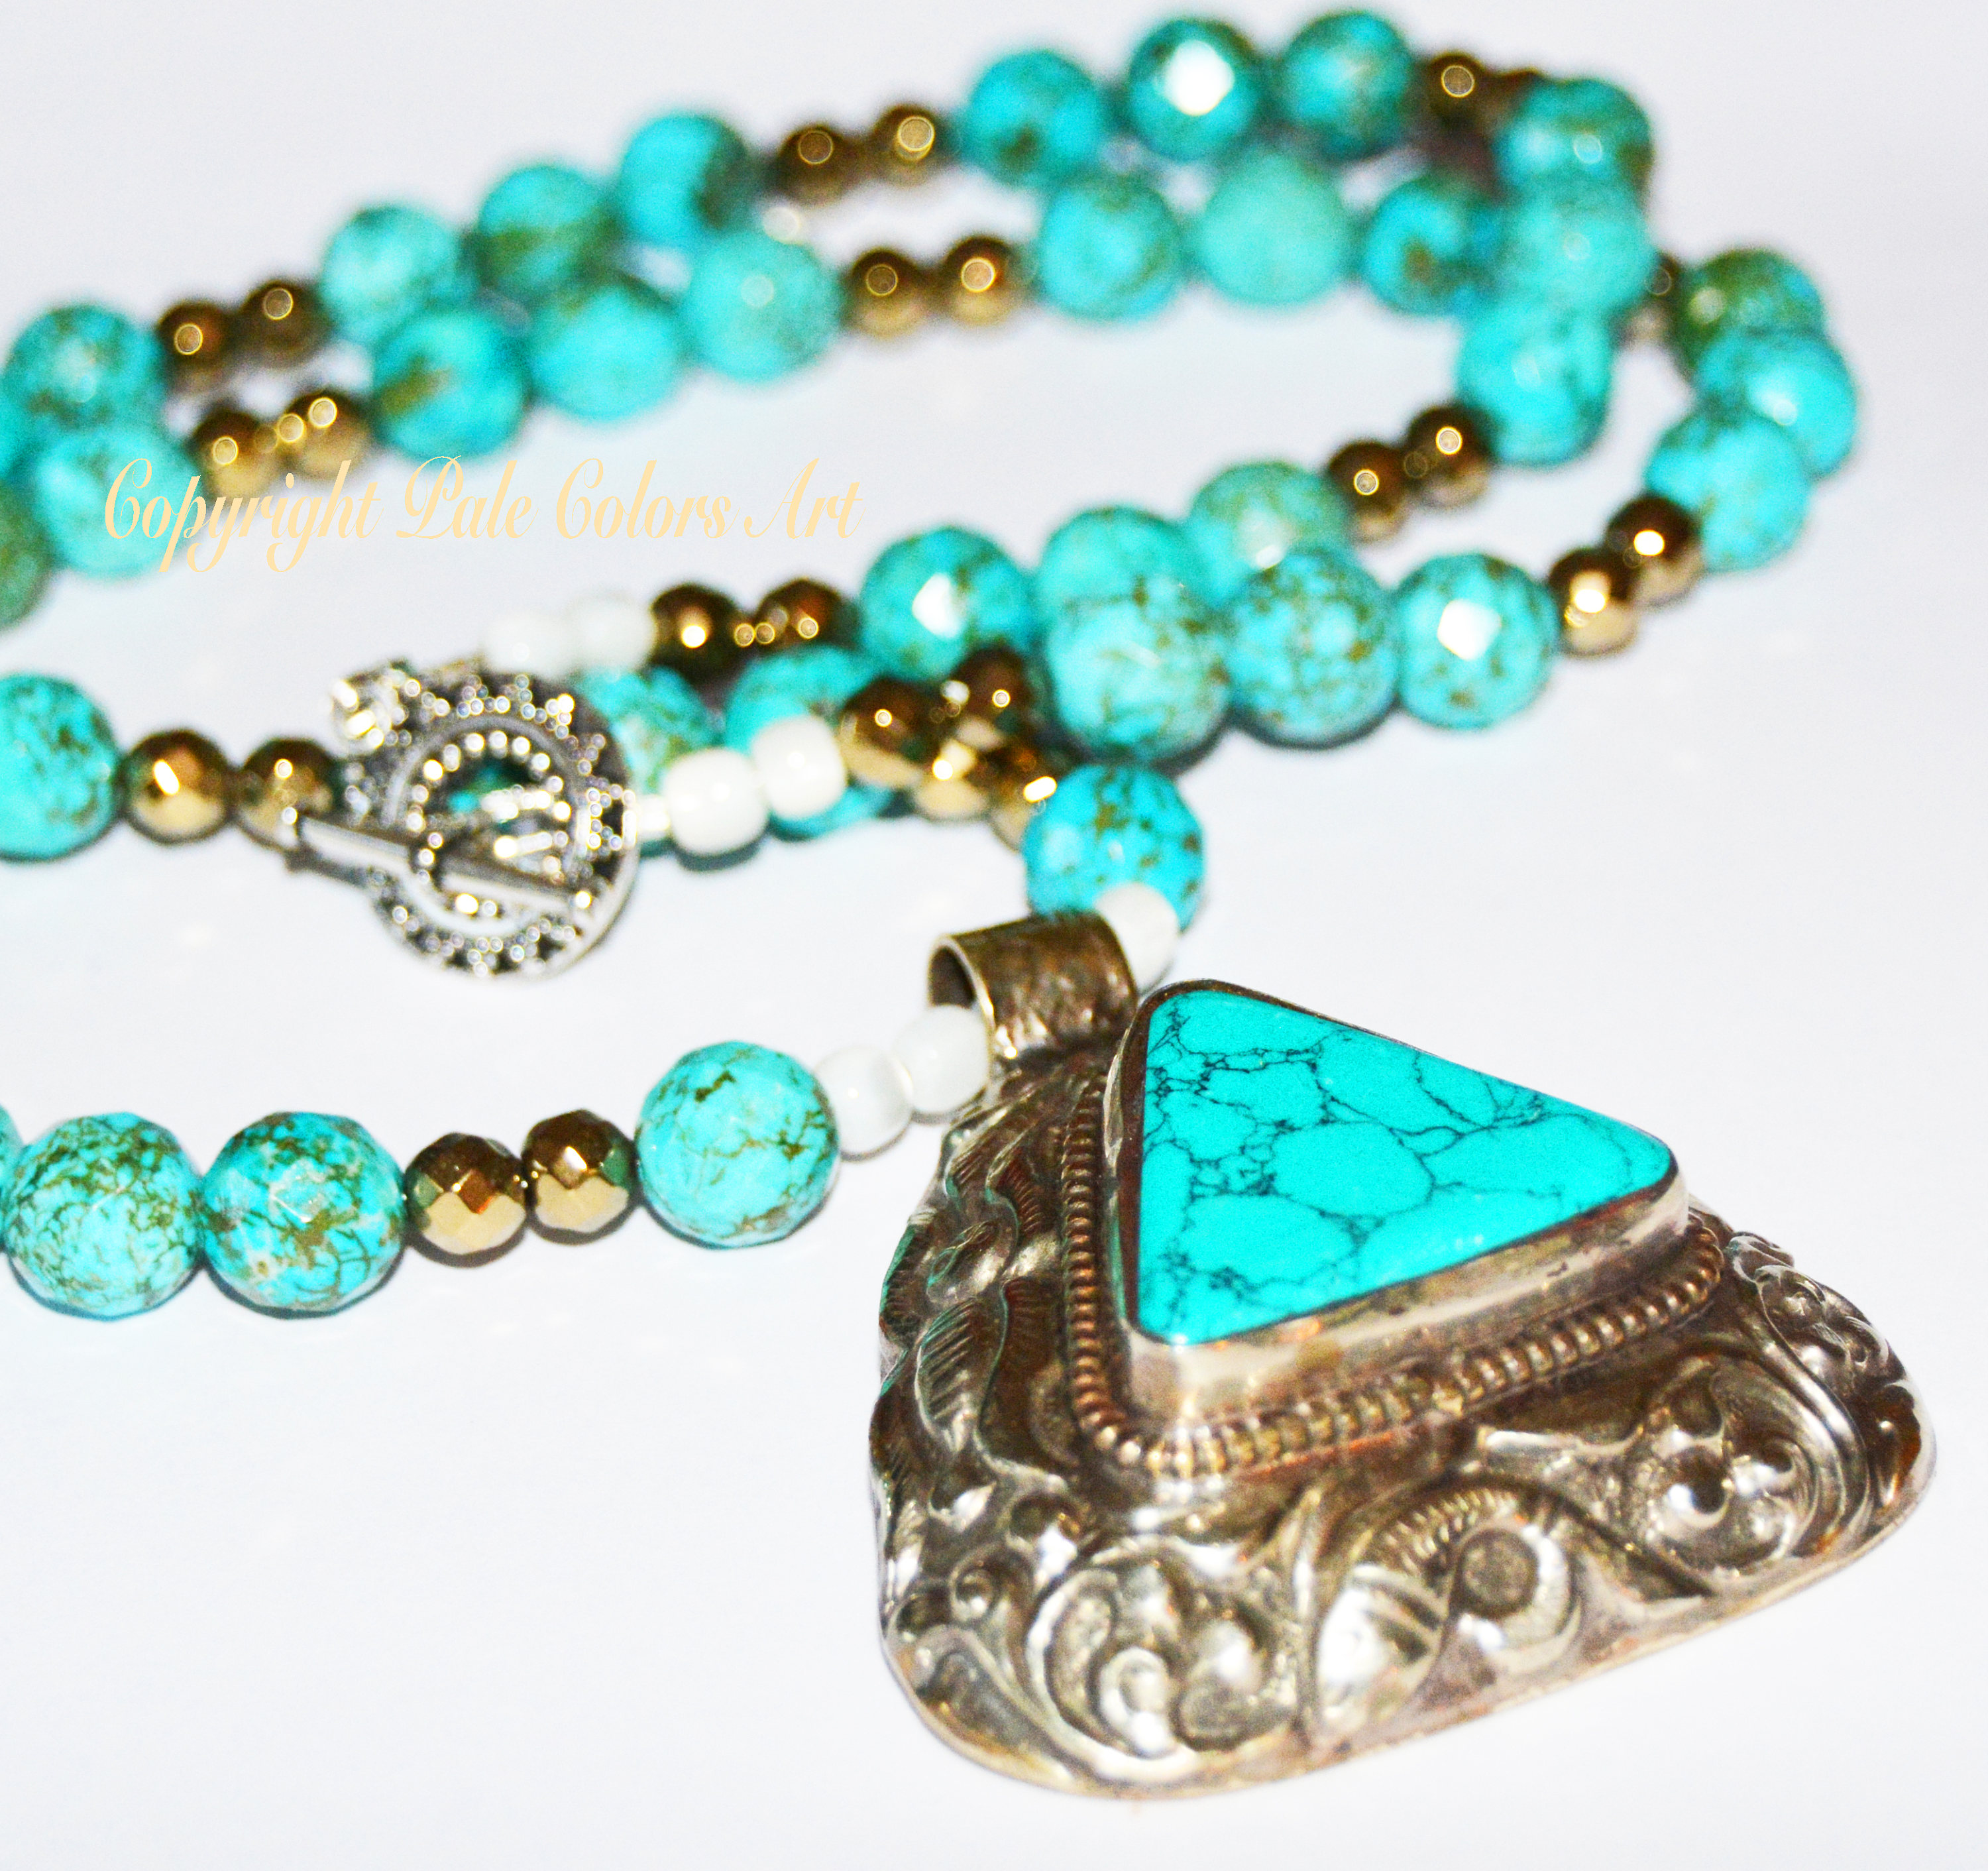 ethnic nepali turquoise b coral carve nepalese tibetan jewelry photos necklace flickr